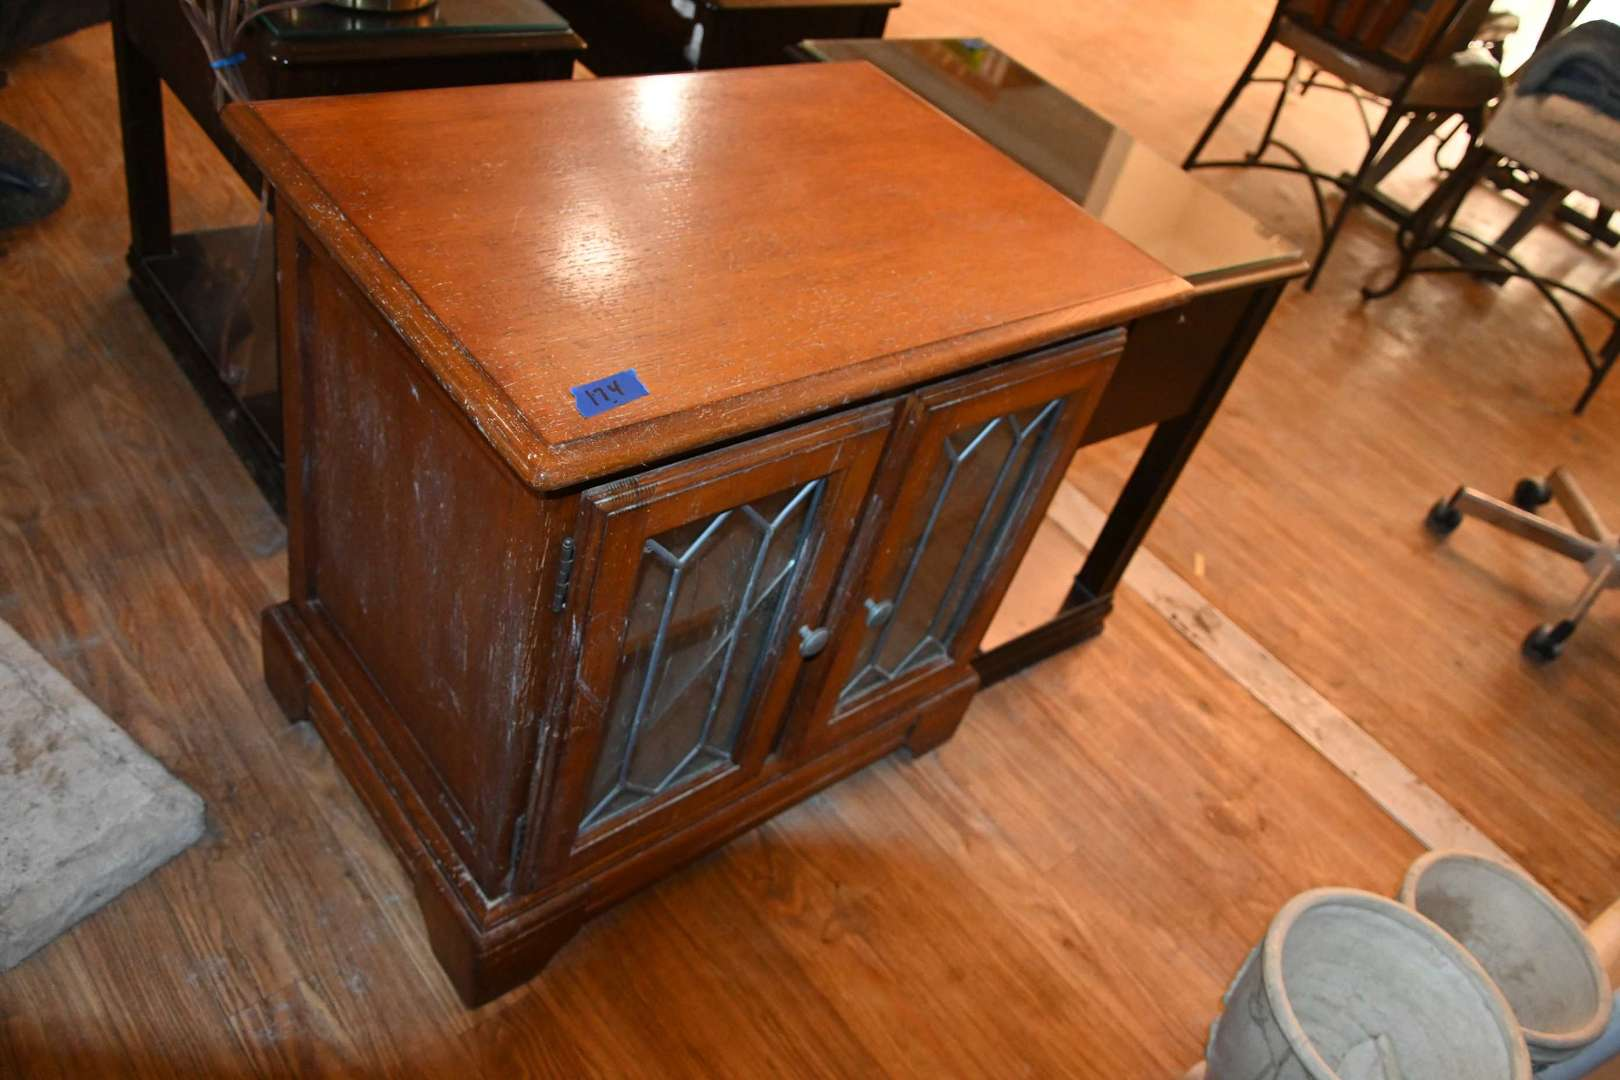 Lot # 174 Side table with glass doors